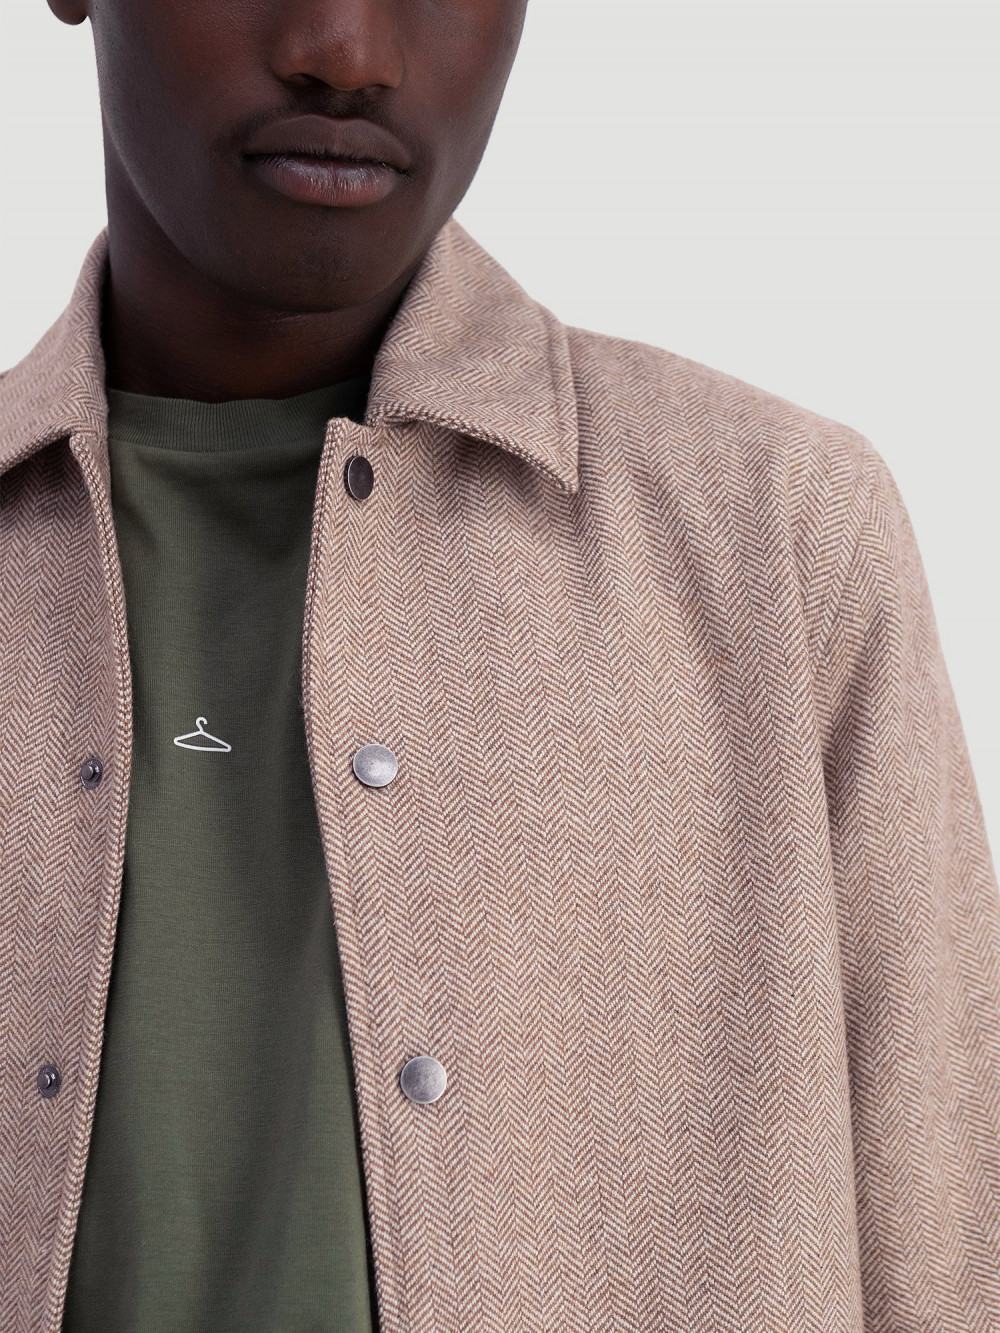 Gabo Shirt Jacket